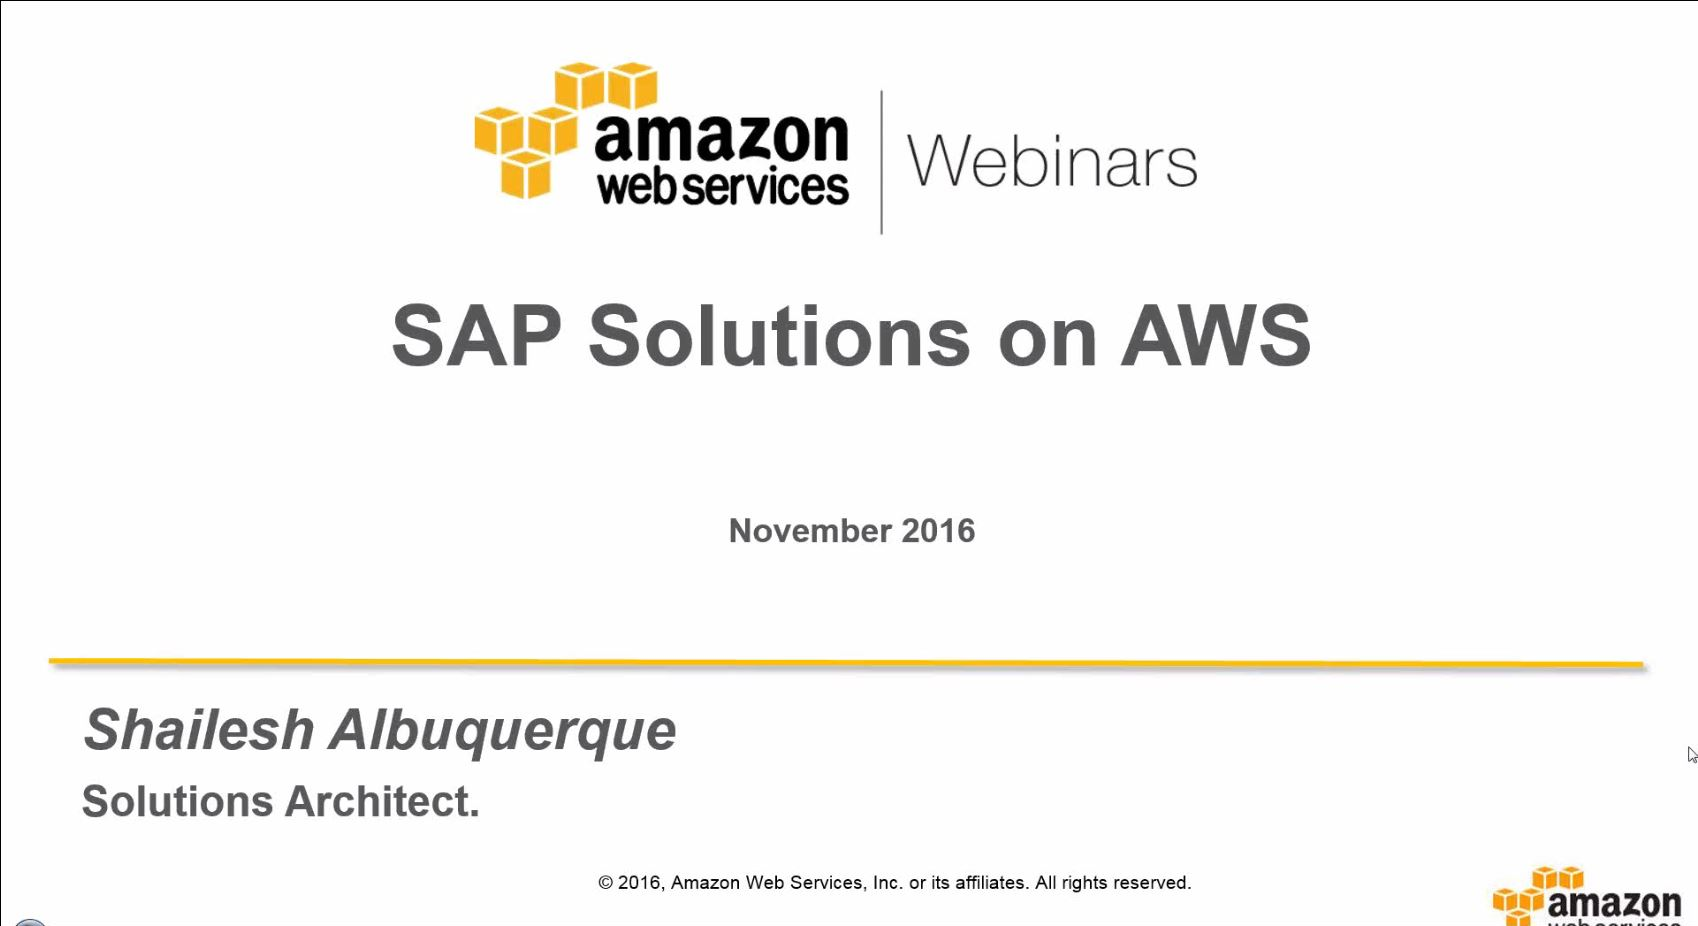 sap solution aws